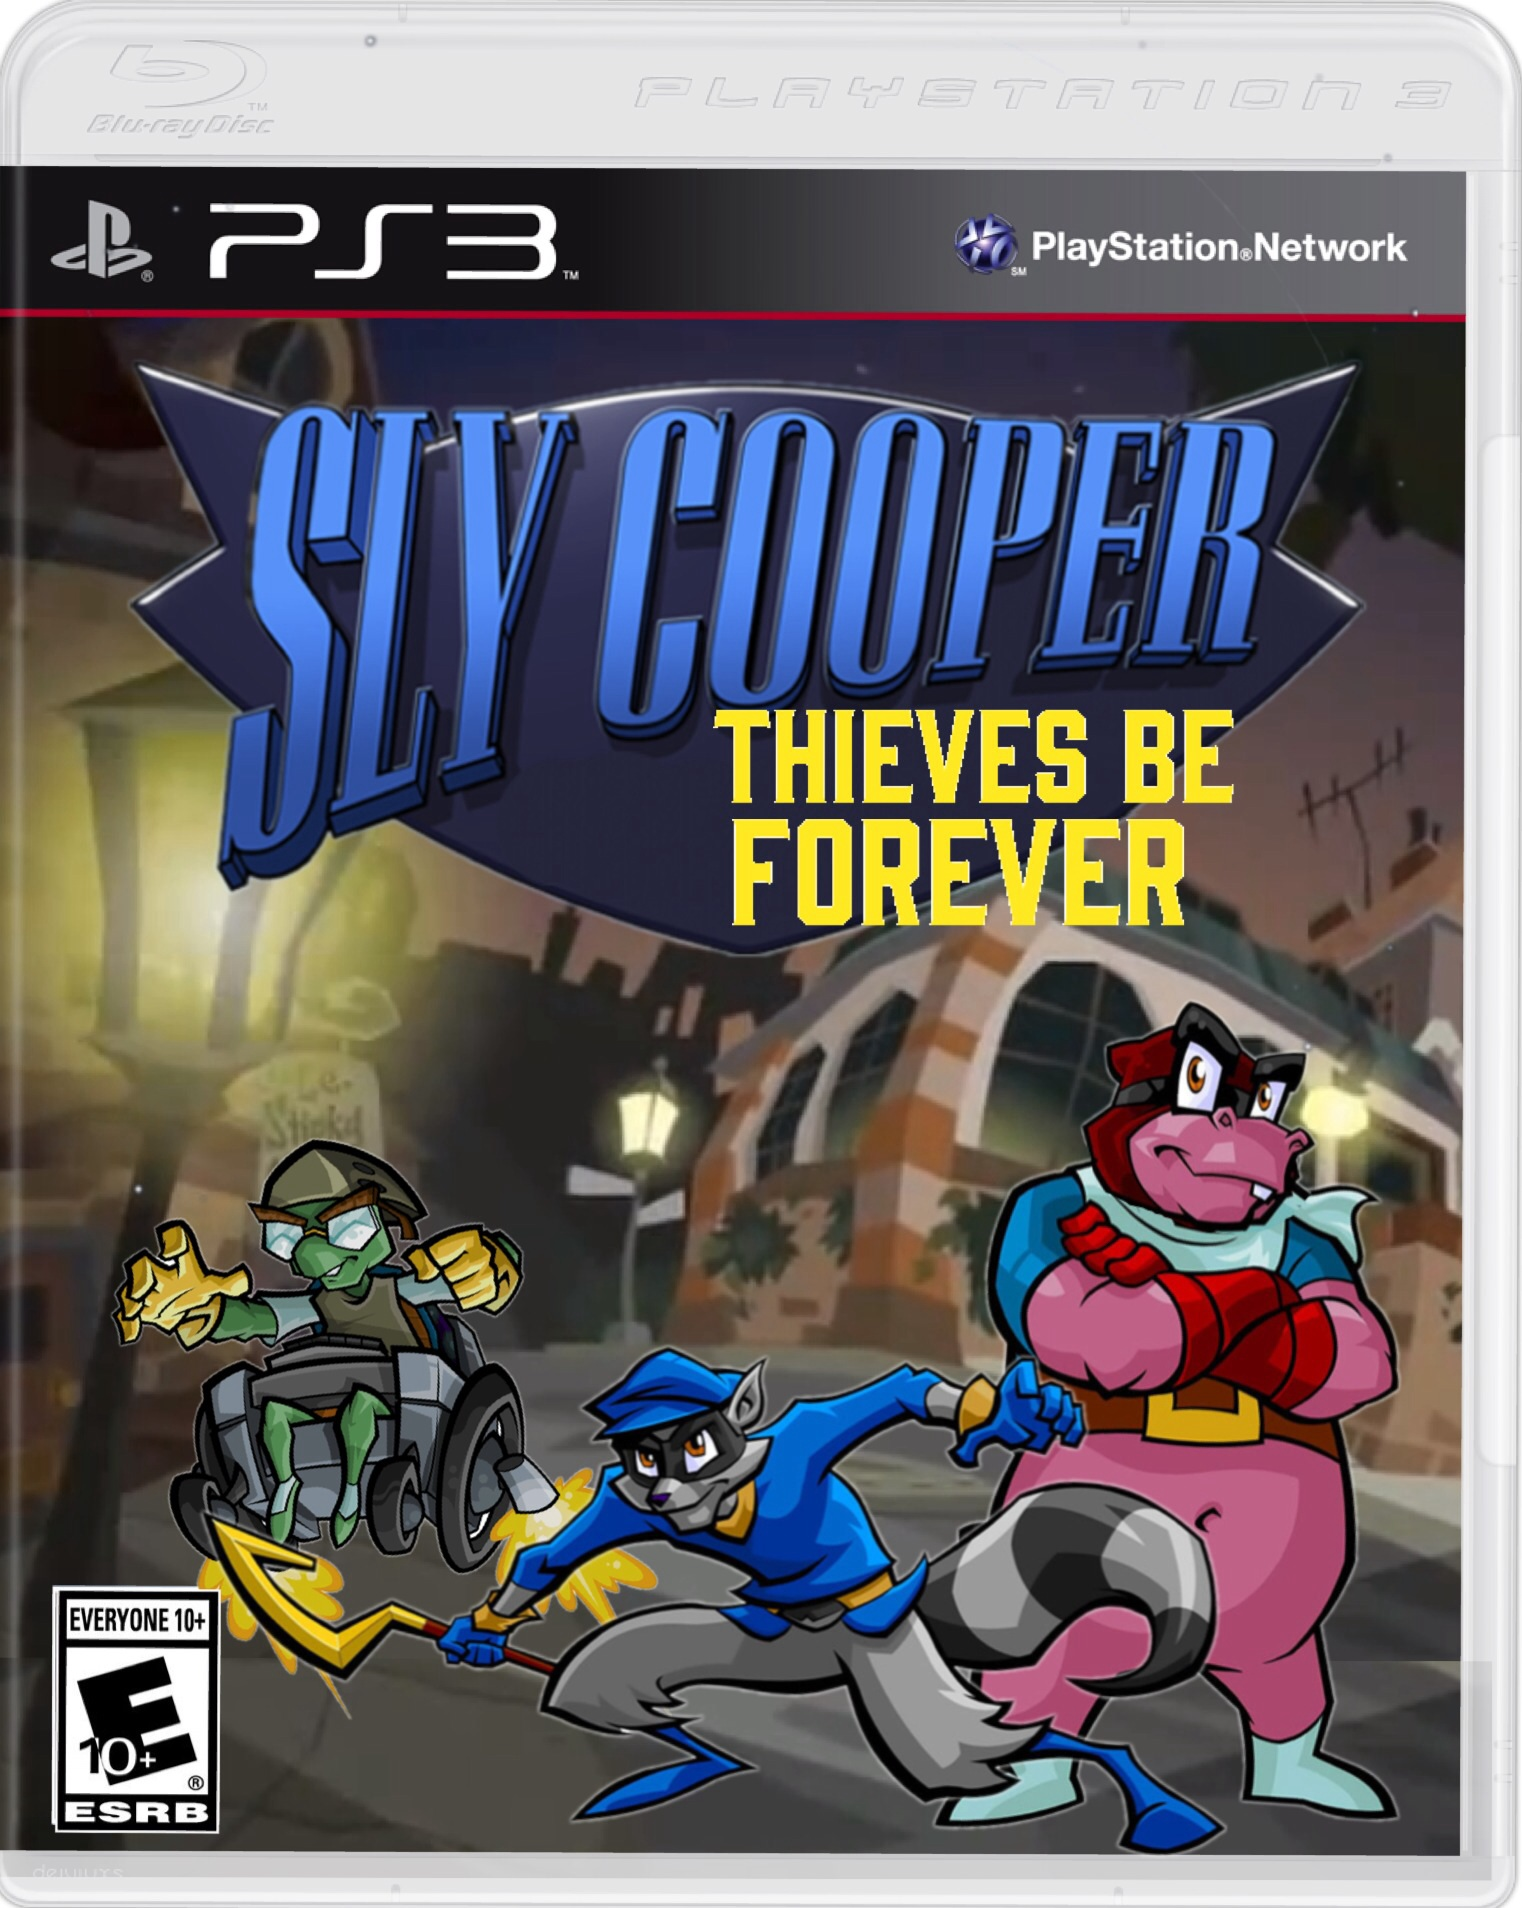 Sly cooper 5 release date in Australia